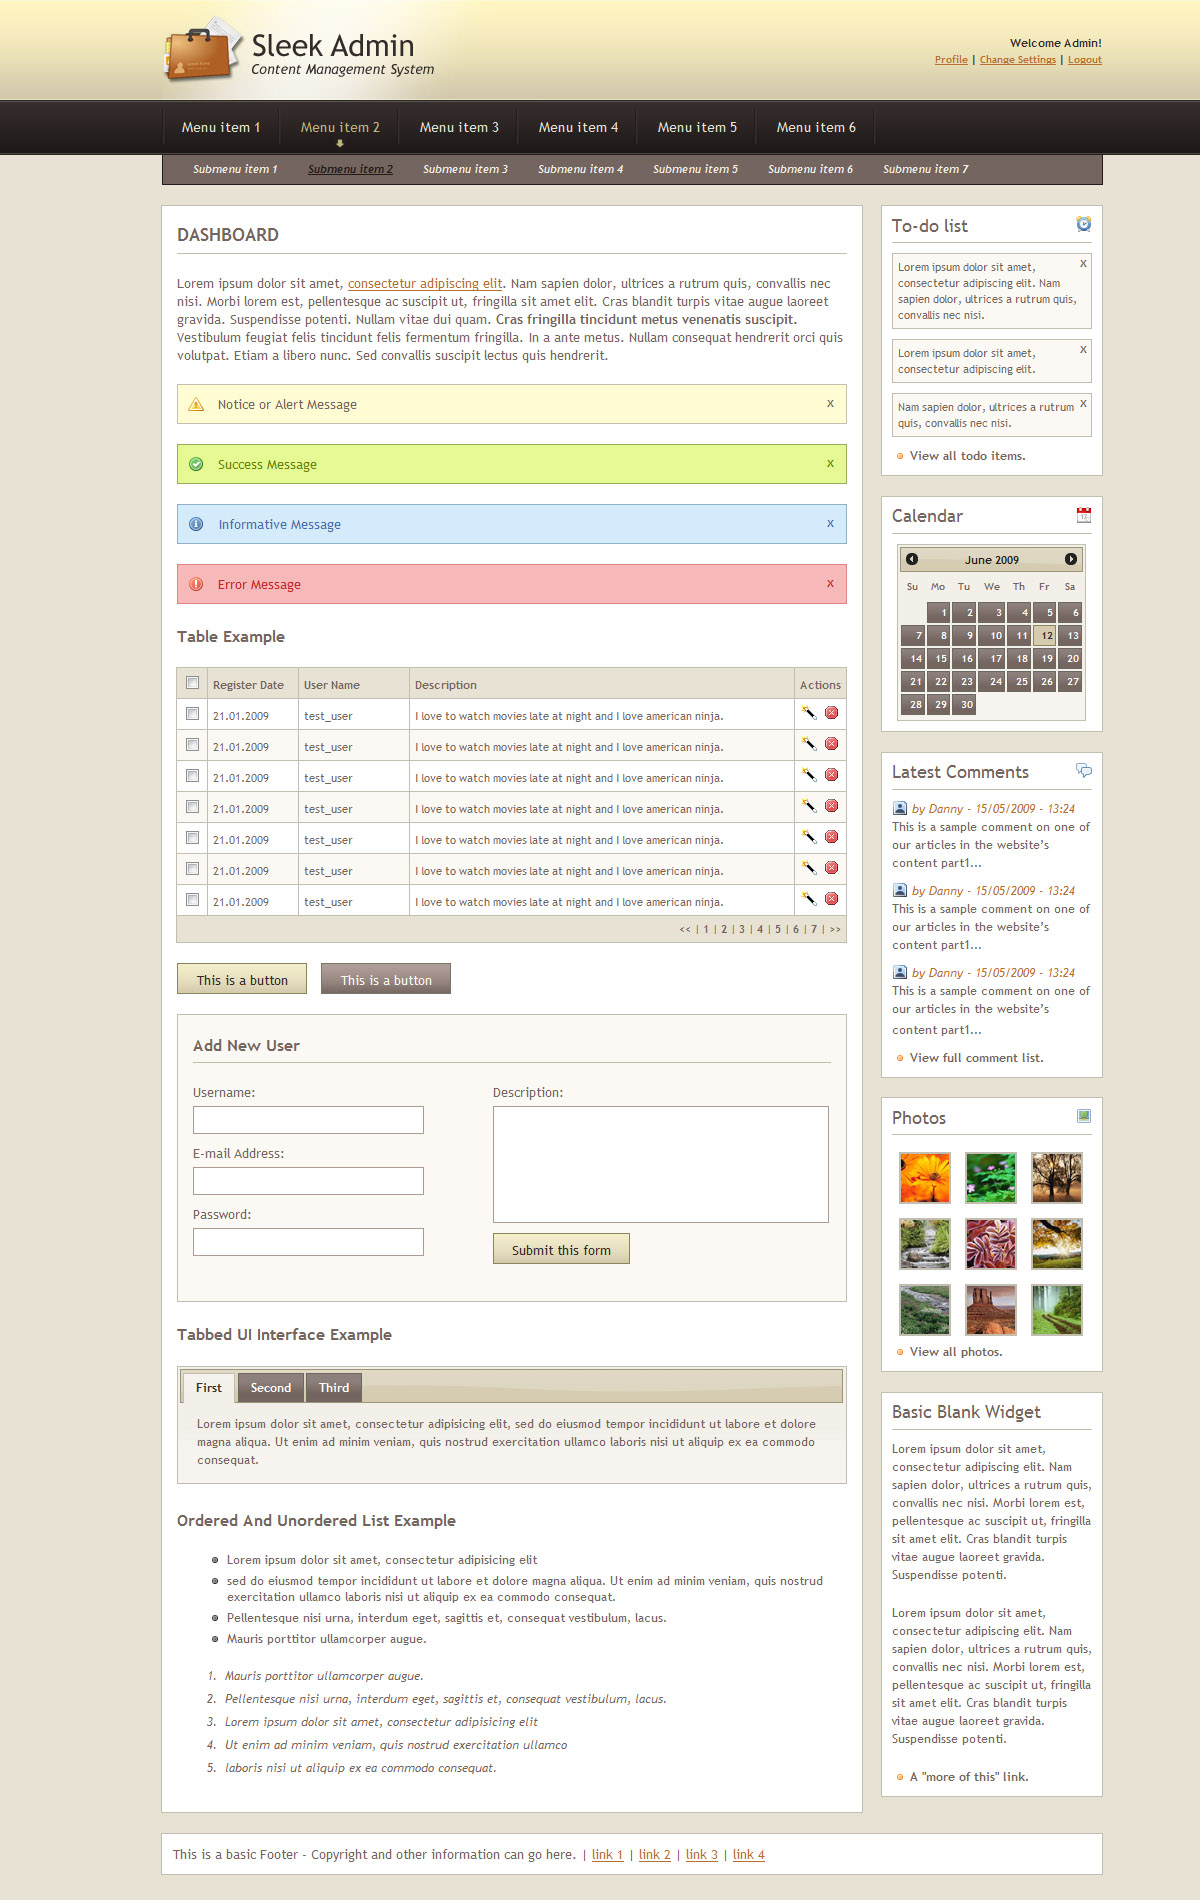 Sleek Admin Clean CSS Admin Skin - Sand Theme - Dashboard with all the layout elements